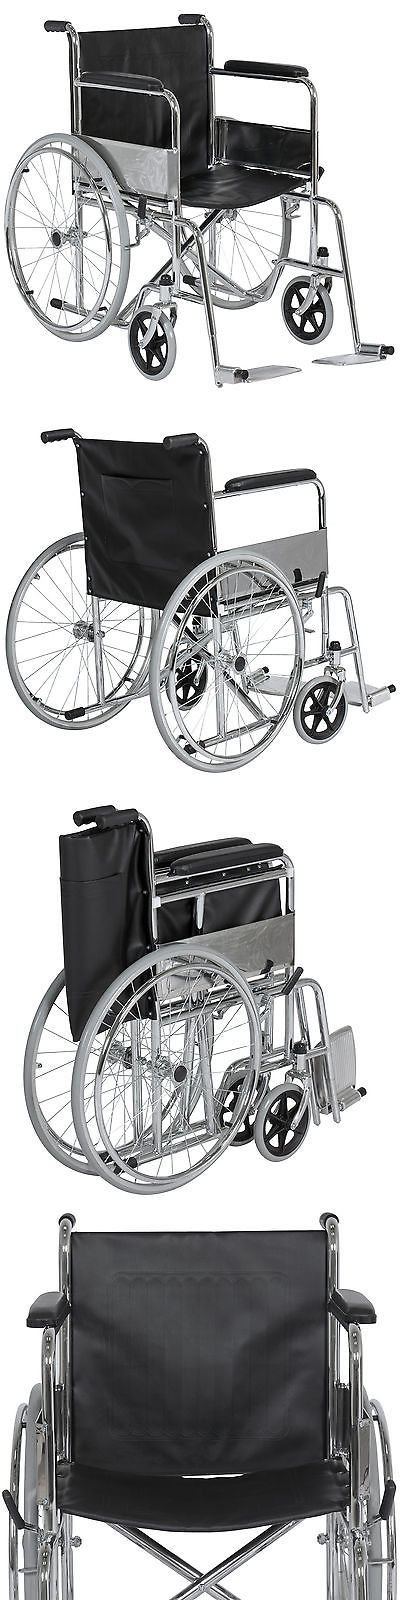 Wheelchairs: Best Choice Products 24 Lightweight Folding Wheelchair Swing-Away Footrest -> BUY IT NOW ONLY: $98.96 on eBay!